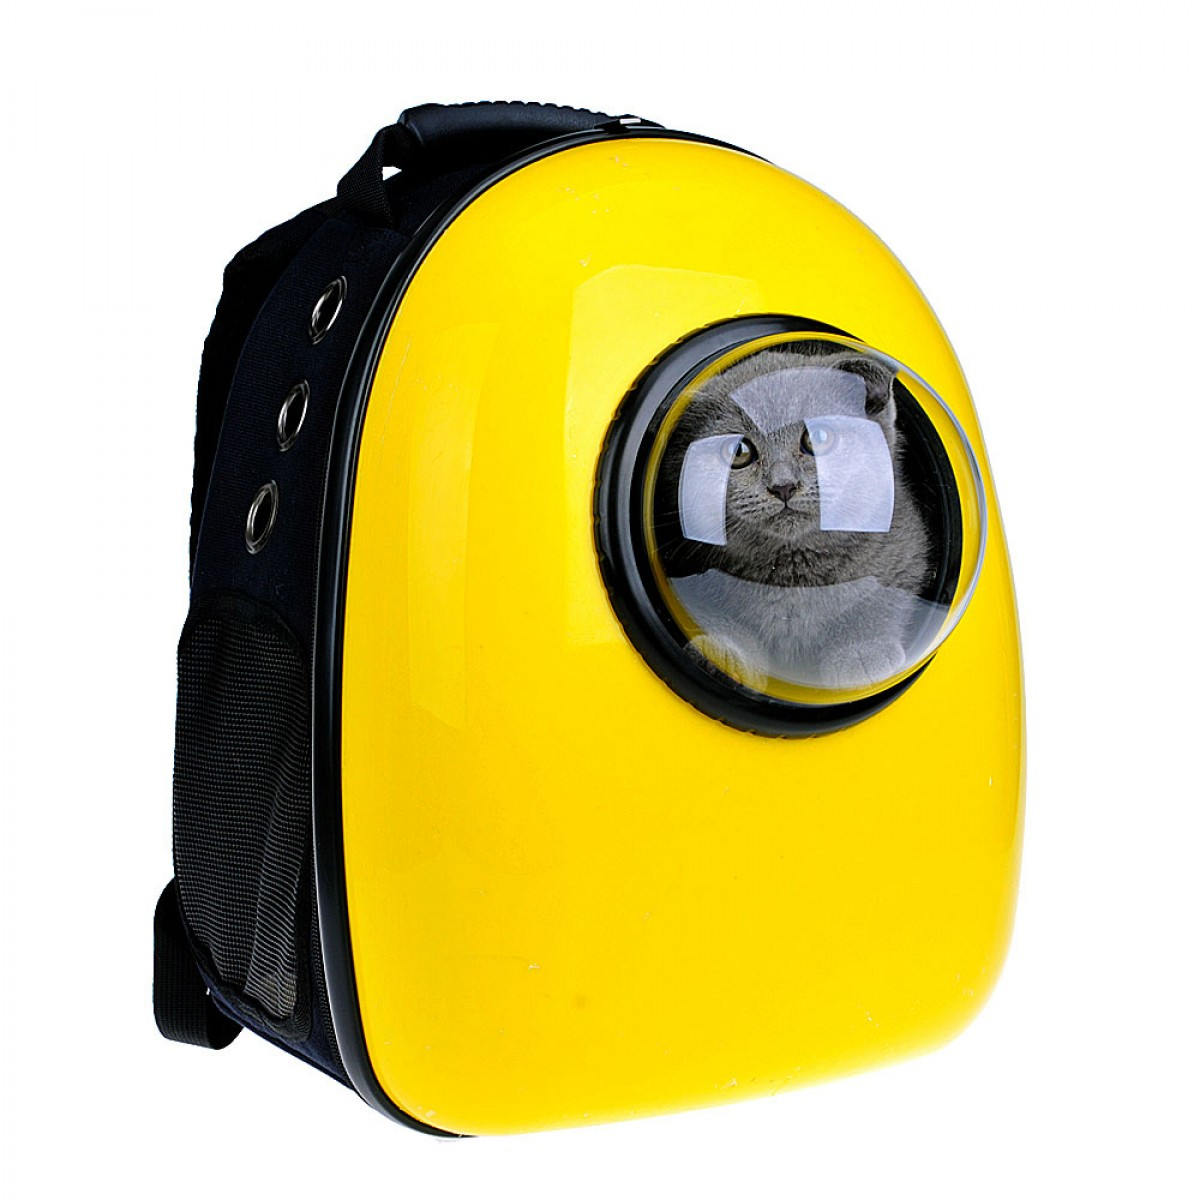 windowed pet carrier